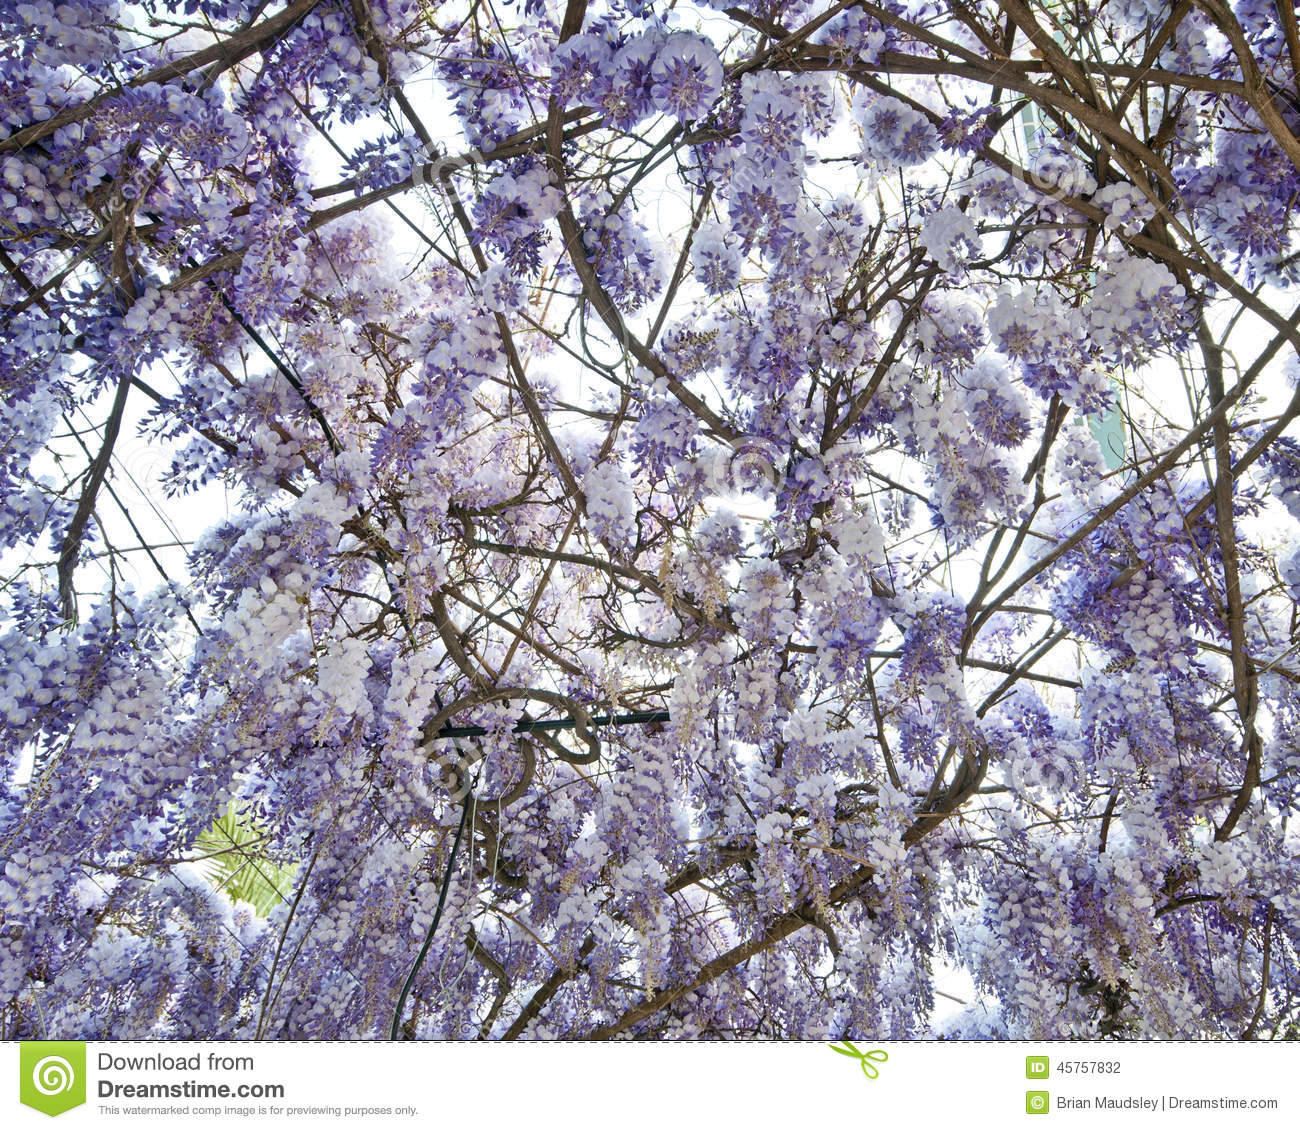 Mass of Wisteria blooms